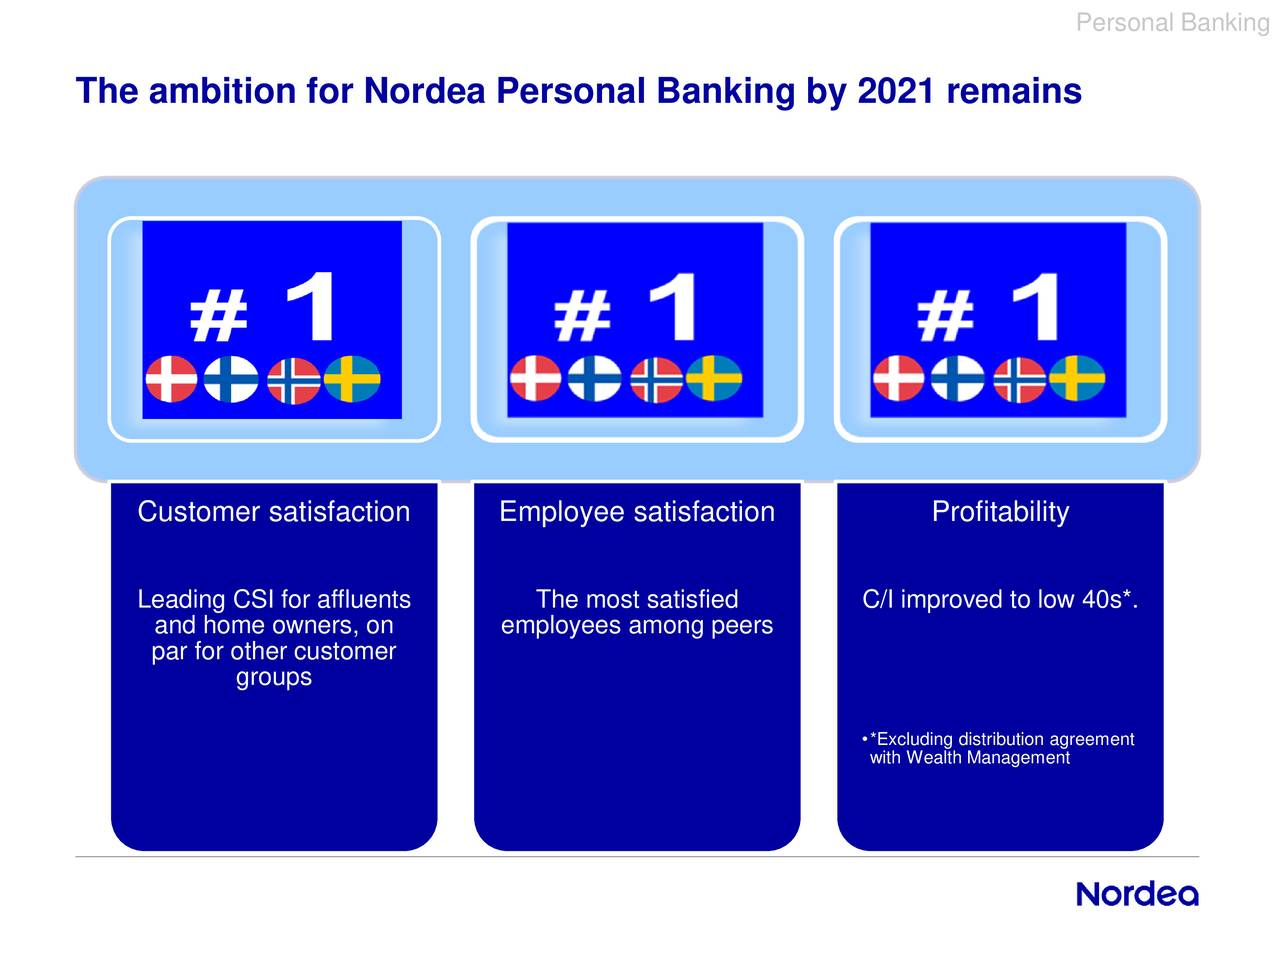 Nordea Personal Banking